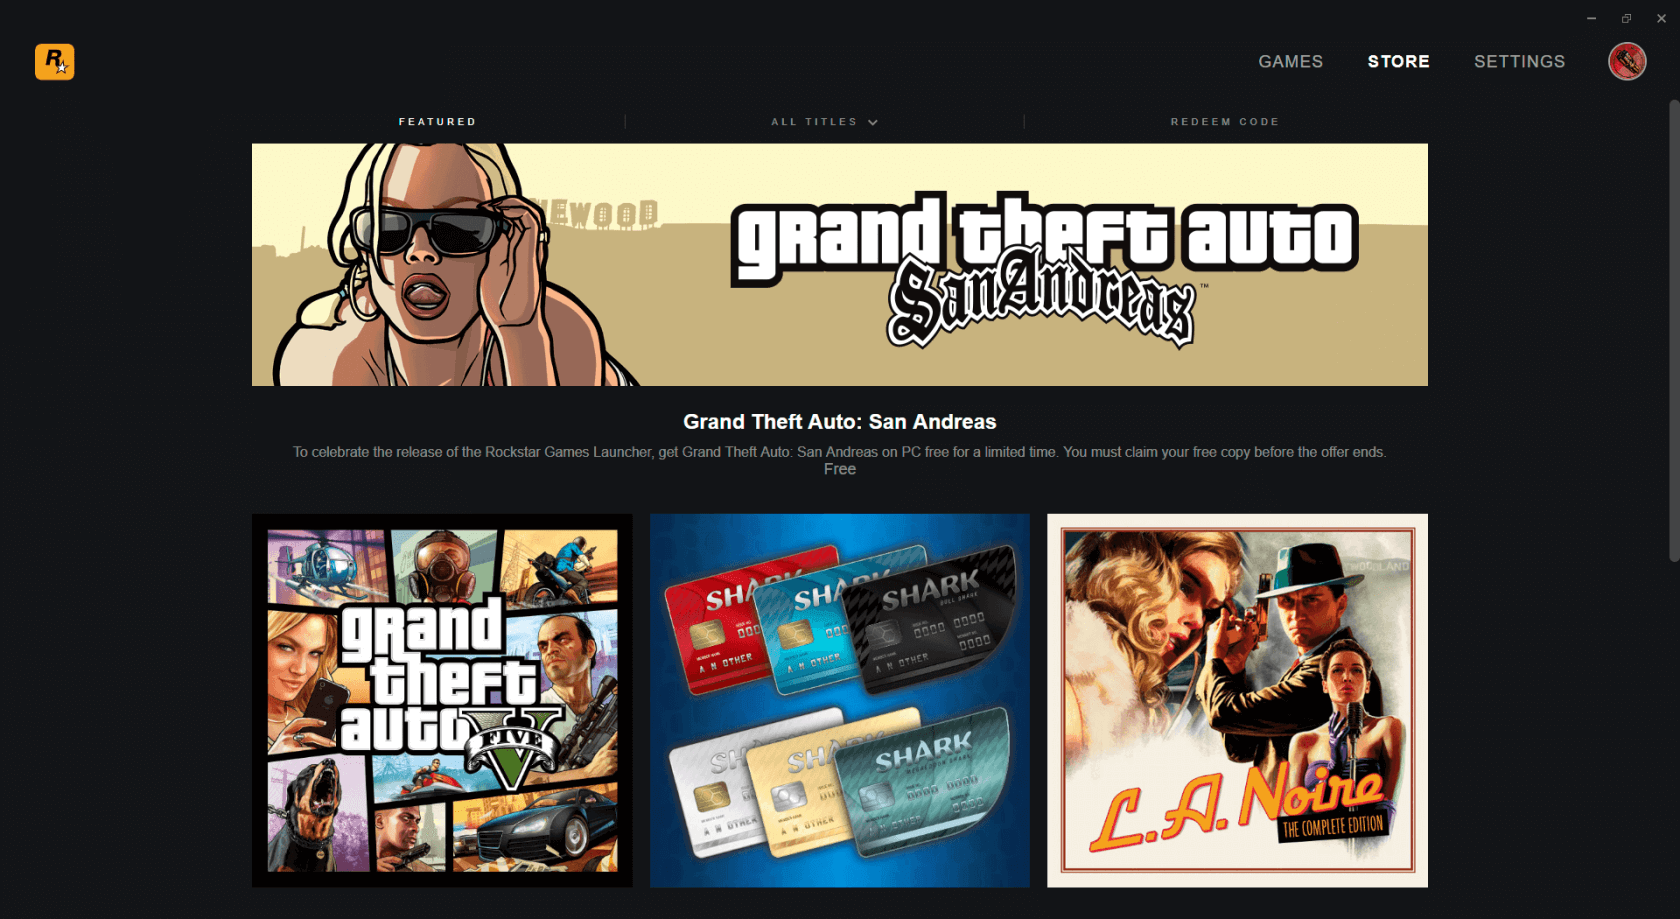 Rockstar joins the PC gaming platform wars with the 'Rockstar Games Launcher'